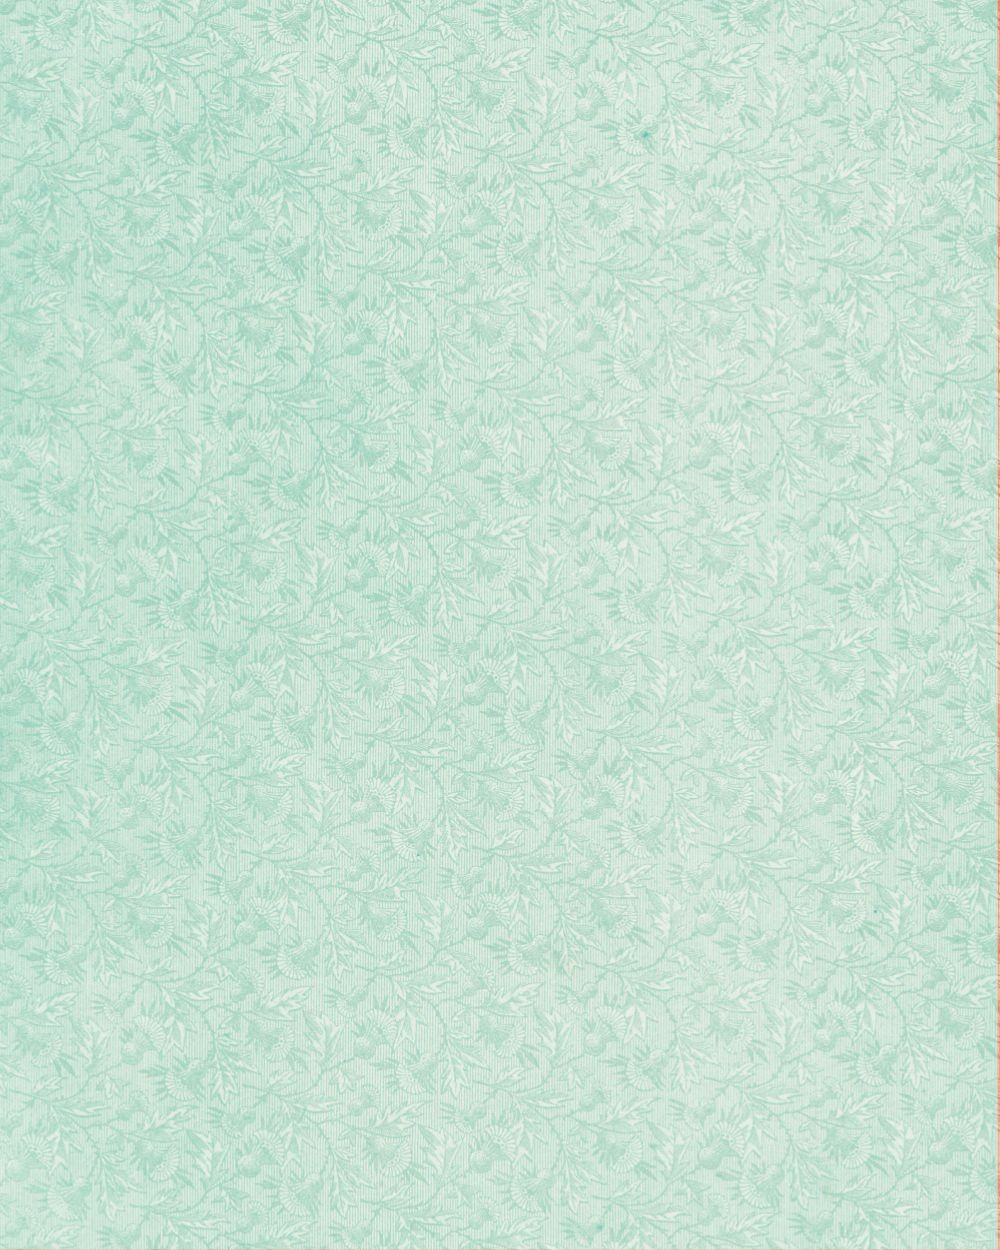 Free Floral Paper Backgrounds   Backgrounds!   Embossed Wallpaper - Free Printable Backgrounds For Paper